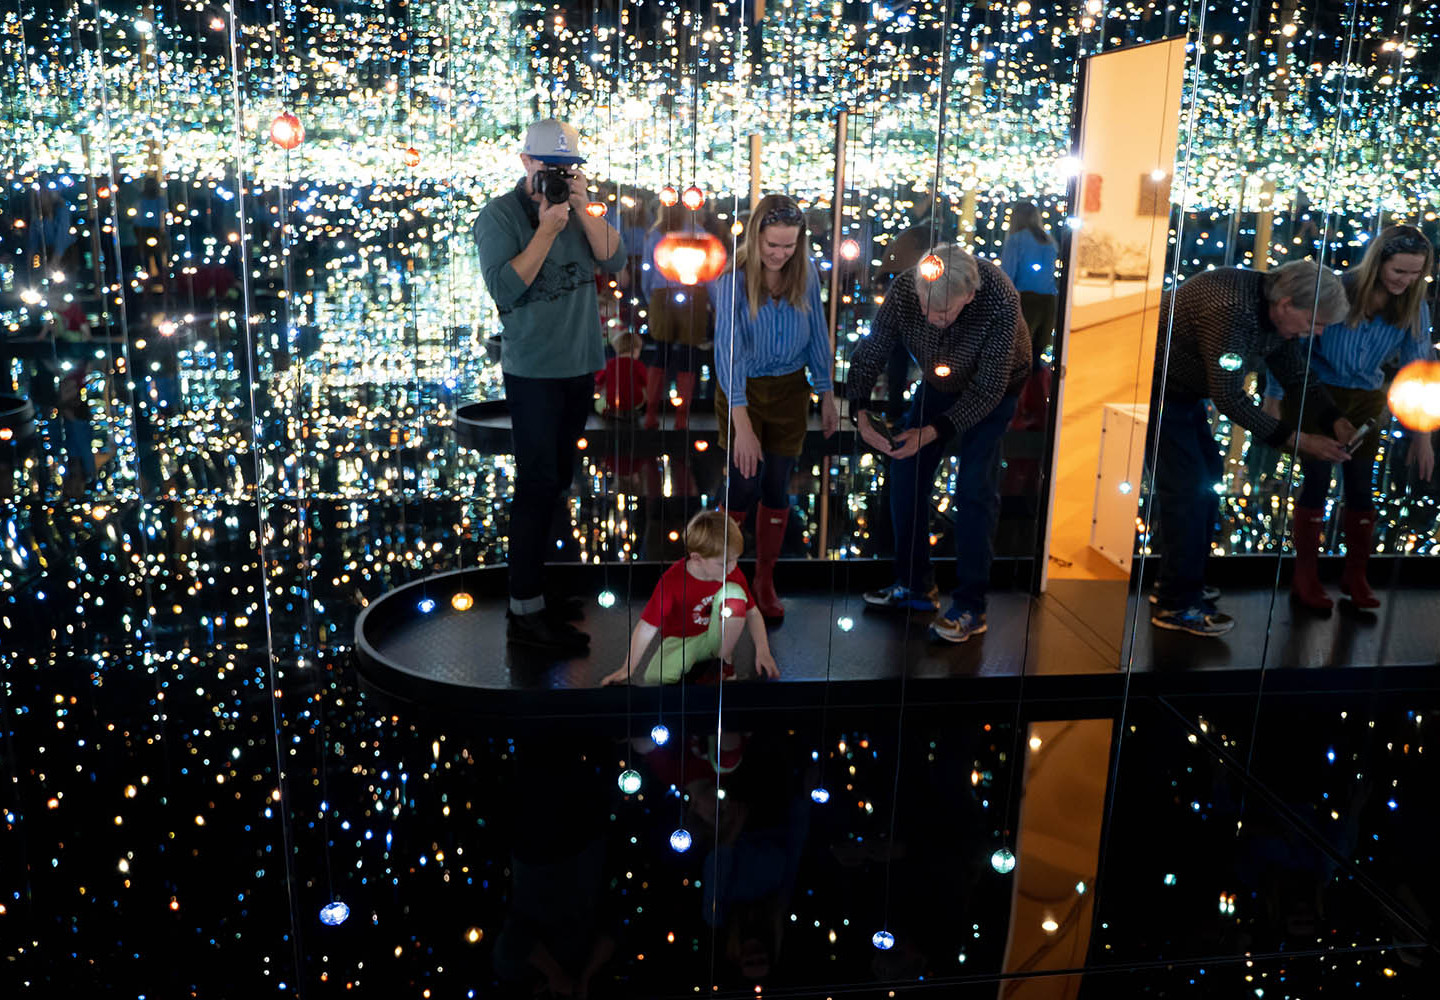 Infinity Mirrored Room—The Souls of Millions of Light Years Away (2013)